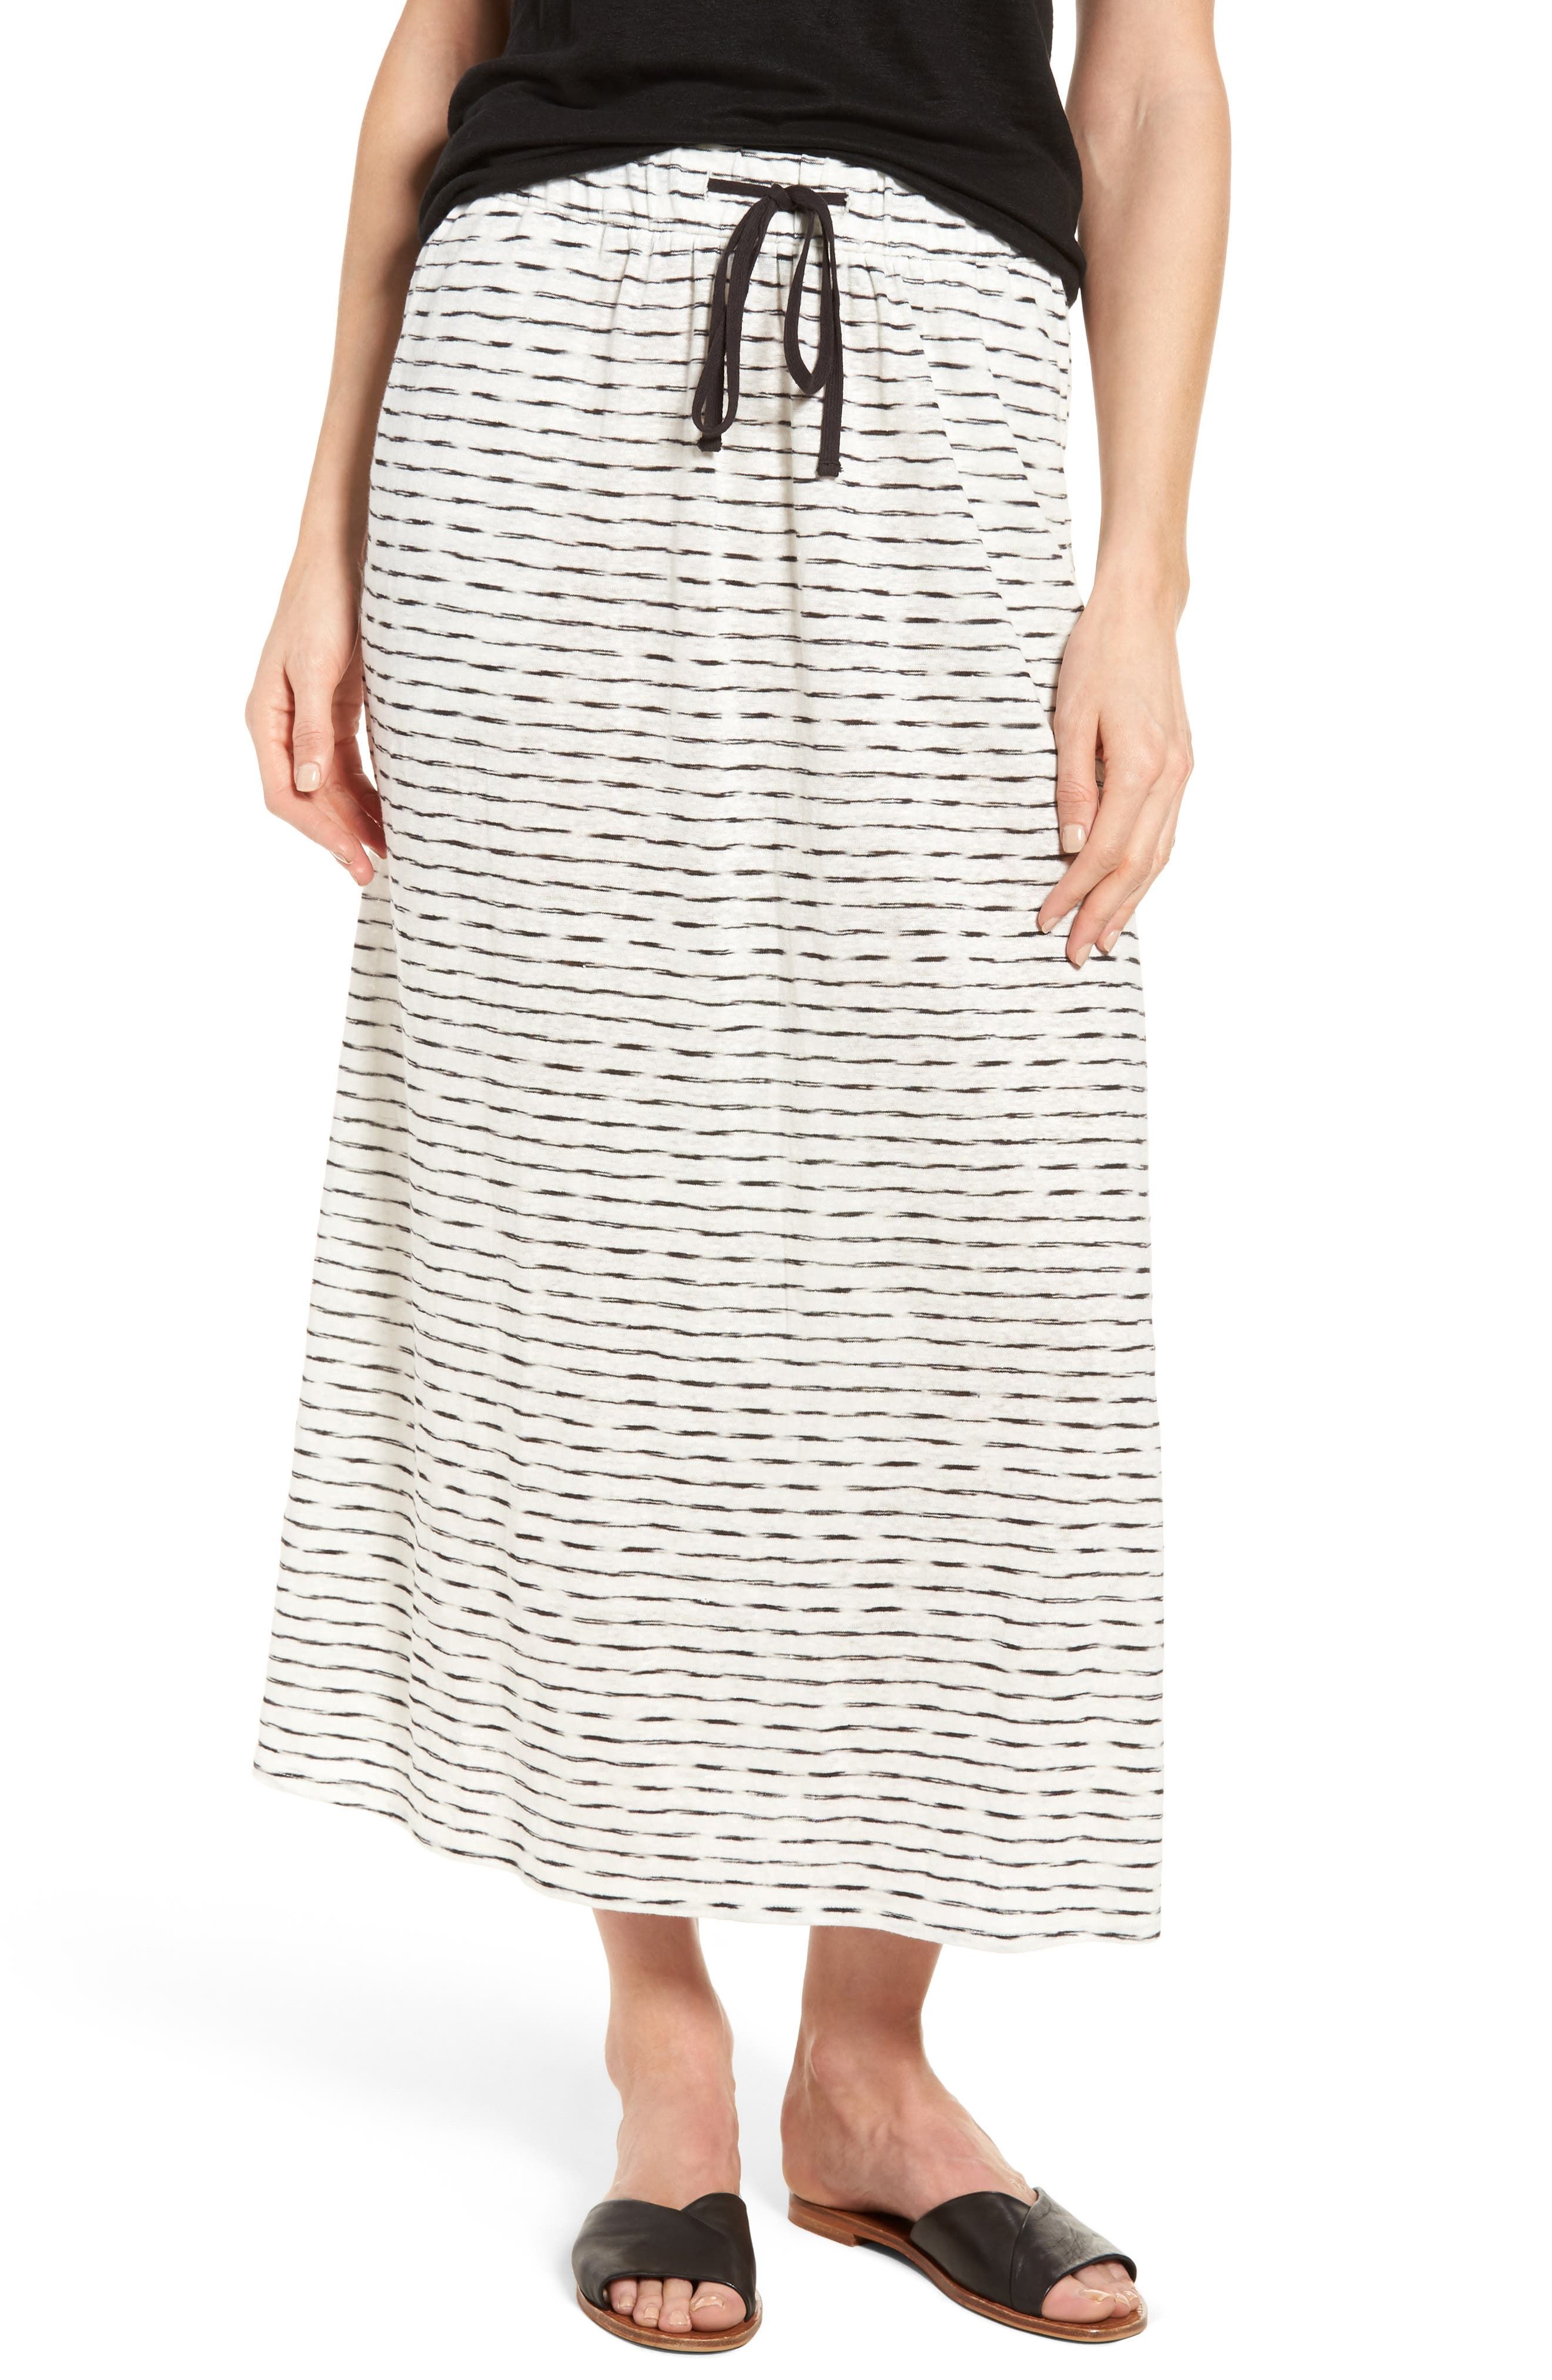 Eileen Fisher Striated Organic Linen Knit Skirt